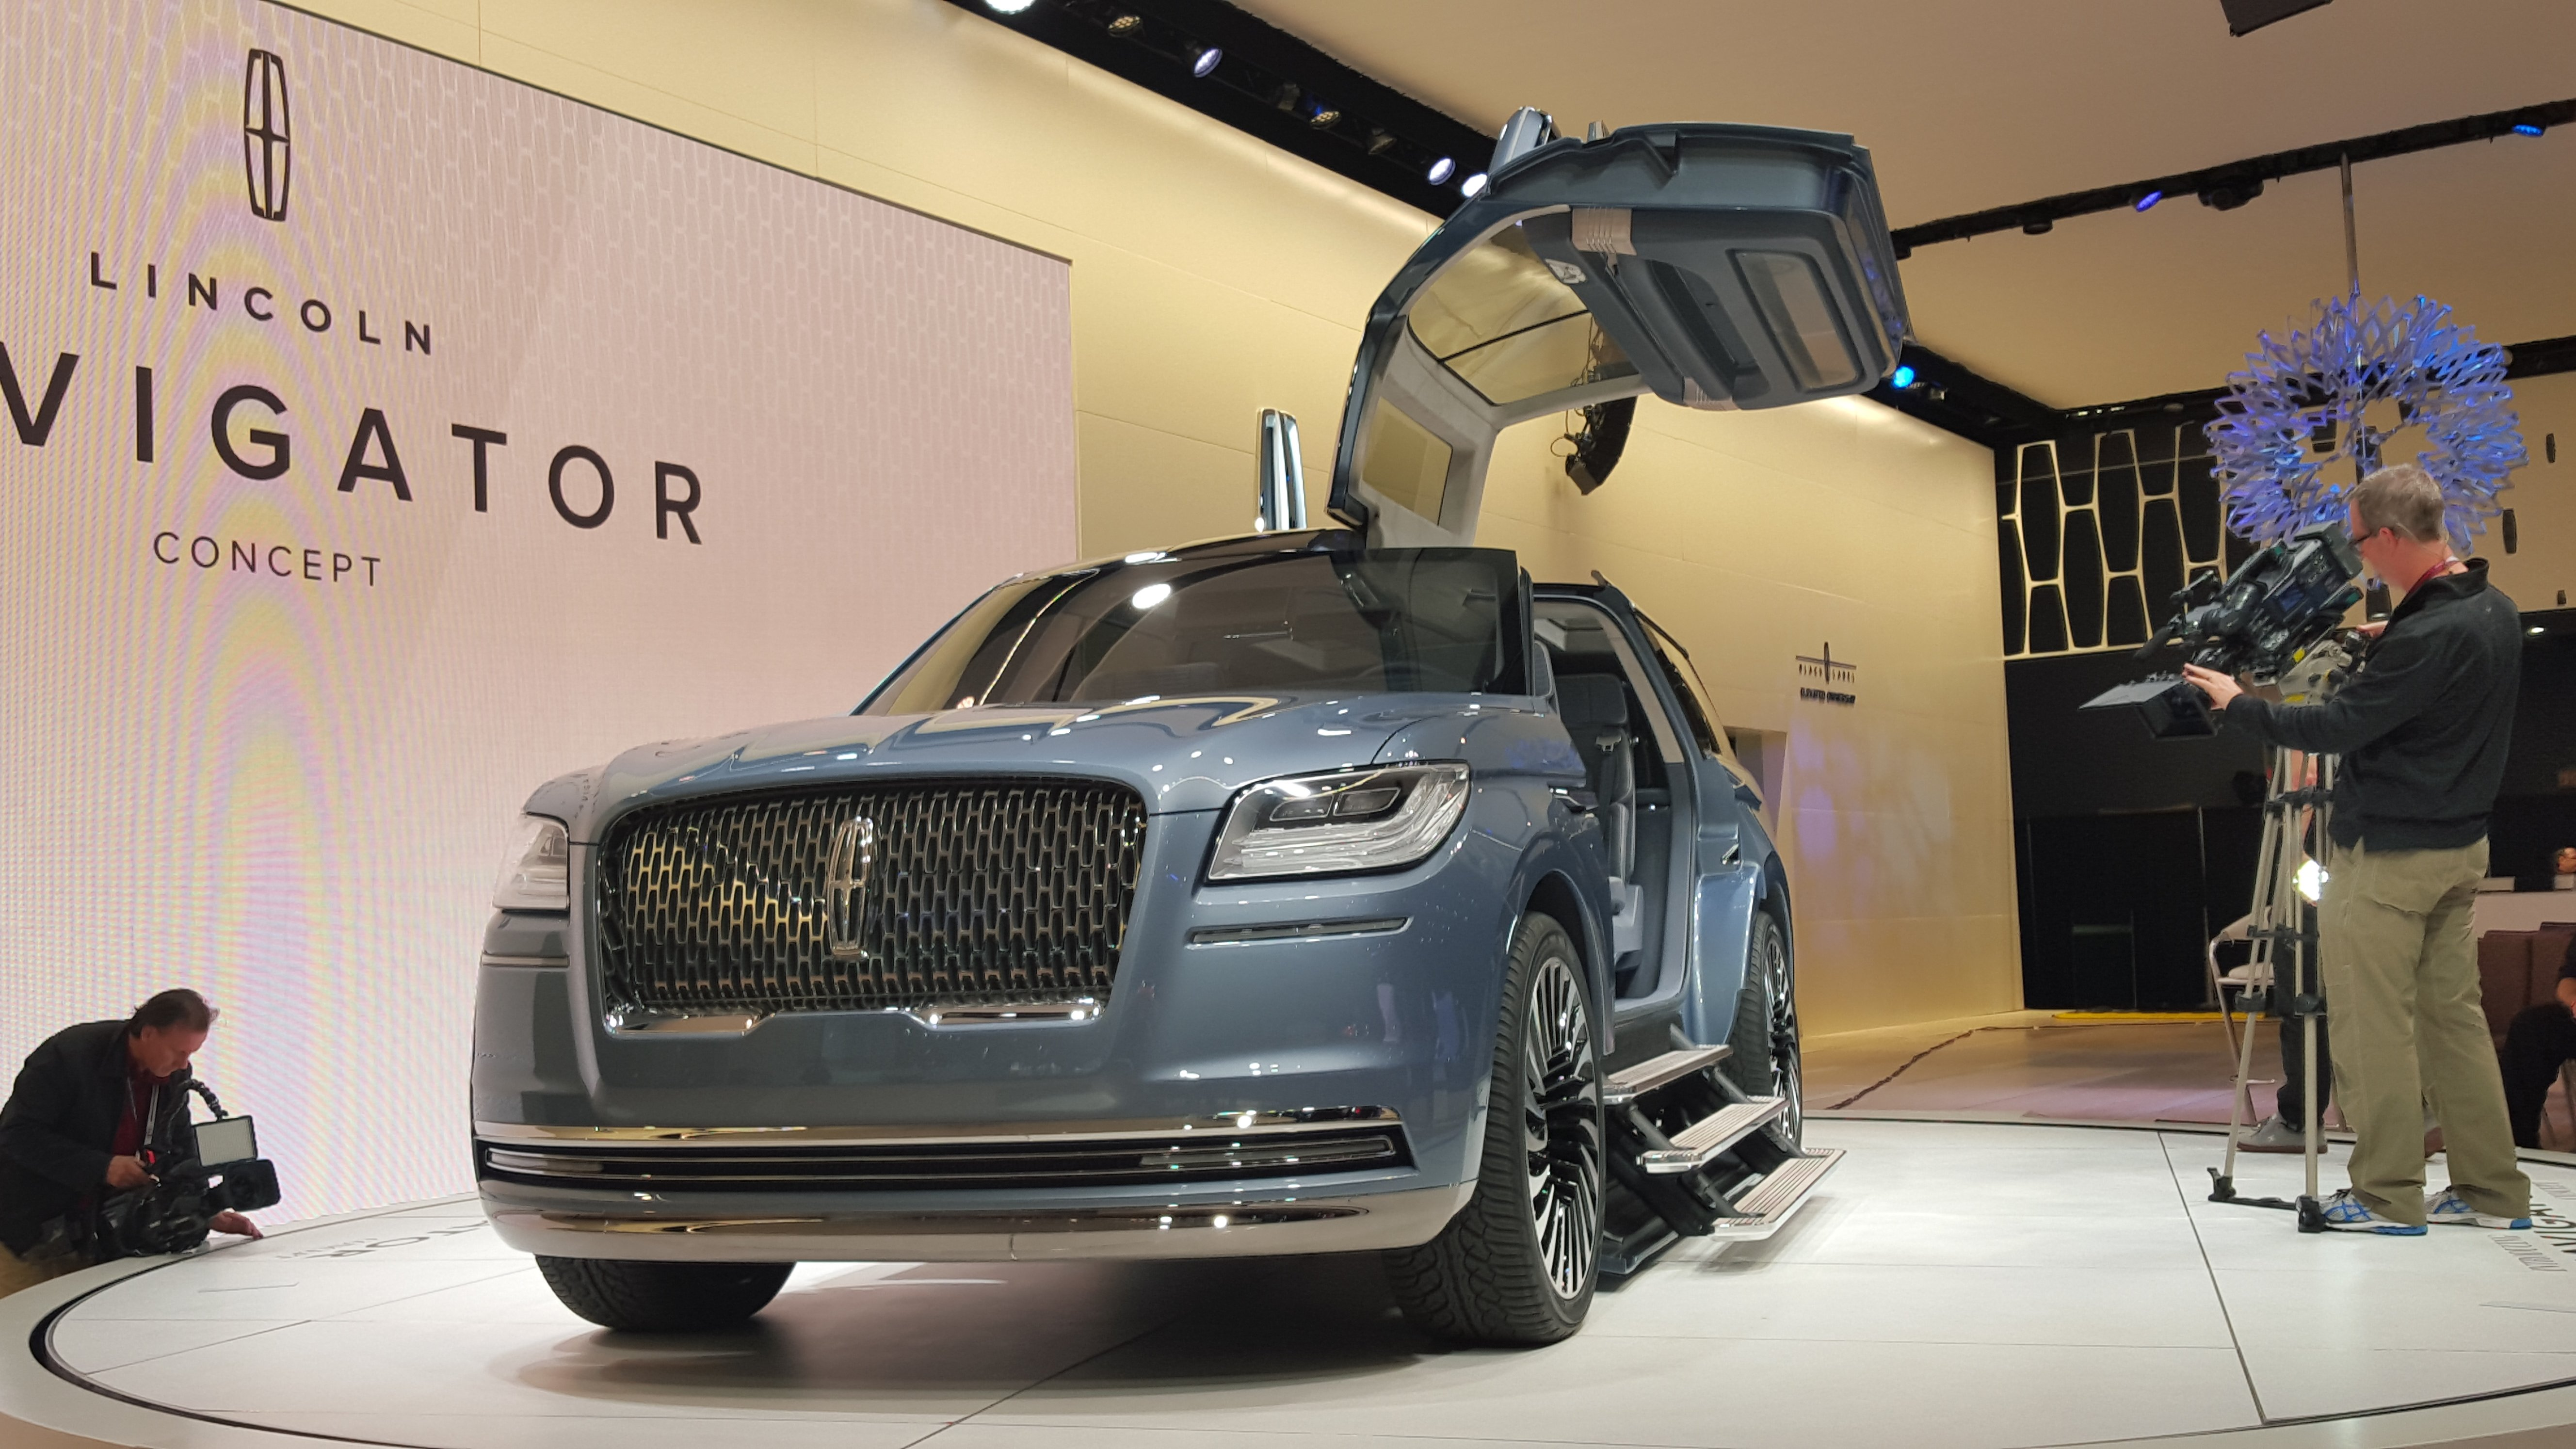 The Lincoln Navigator Concept Live from NYAIS